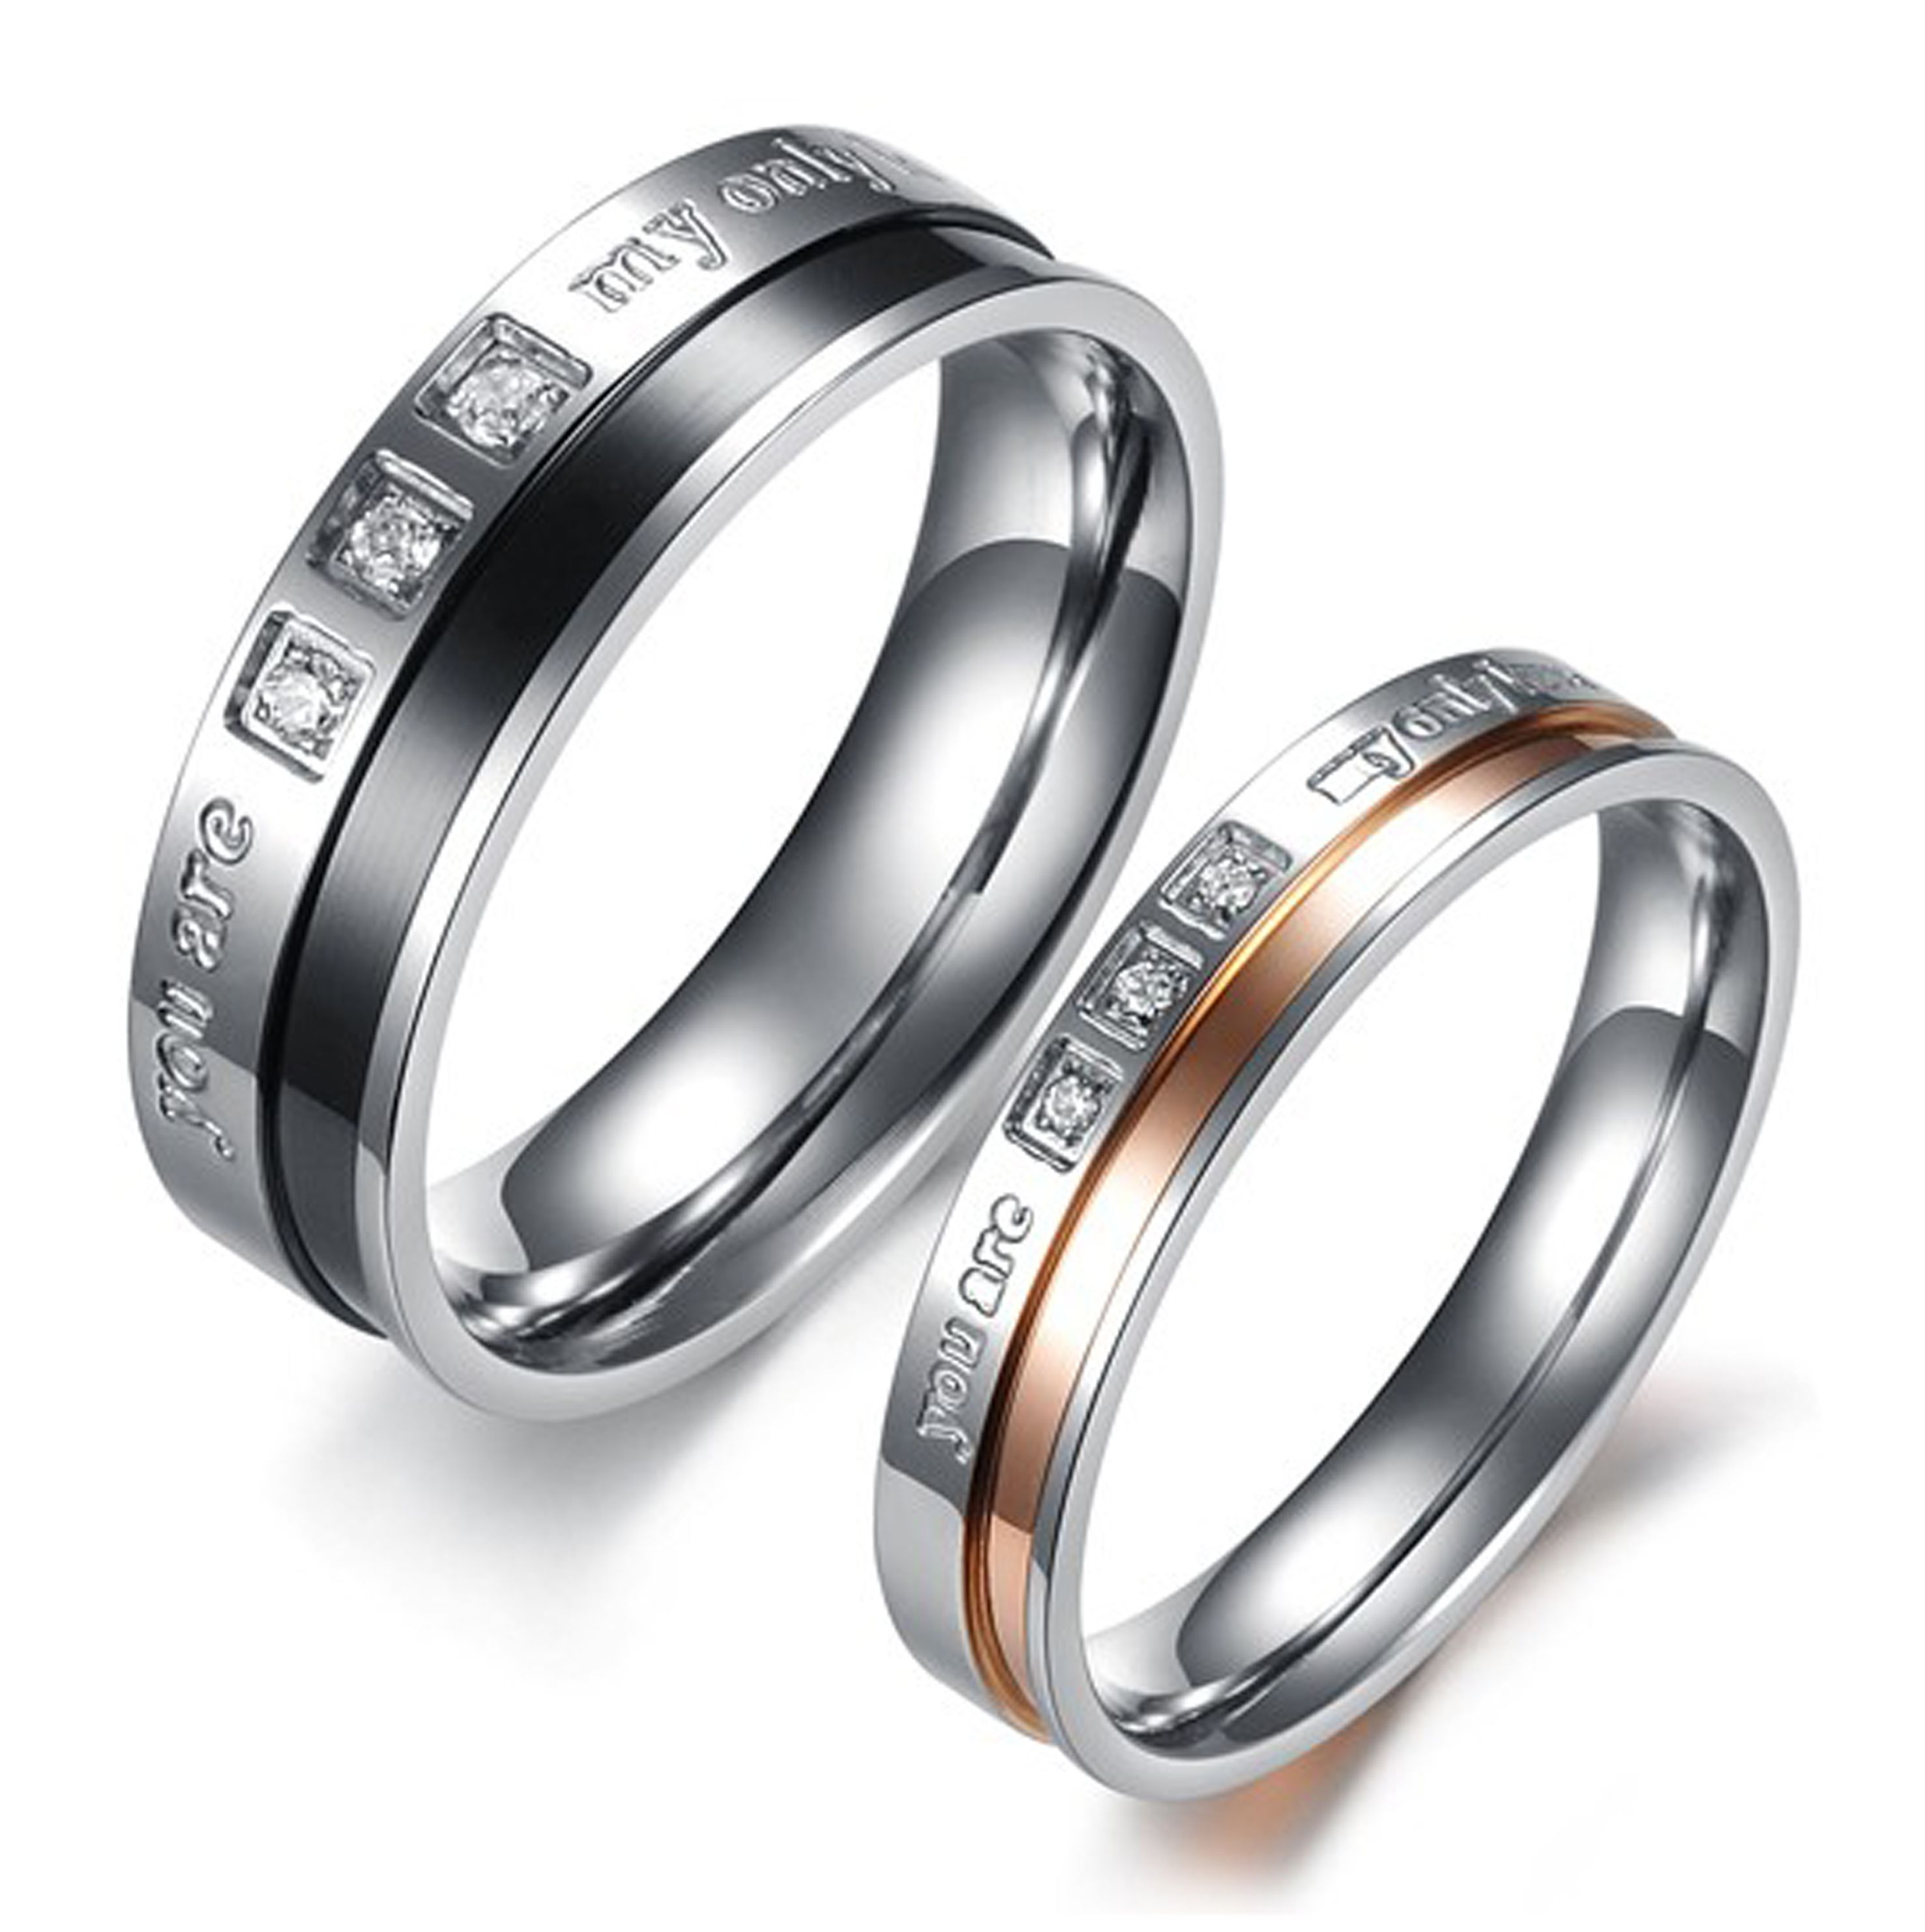 Personalized Custom Titanium Couples Rings Couple Ring Couples Ring Couple Rings Womens Jewelry Rings Promise Rings For Couples Wedding Ring Bands